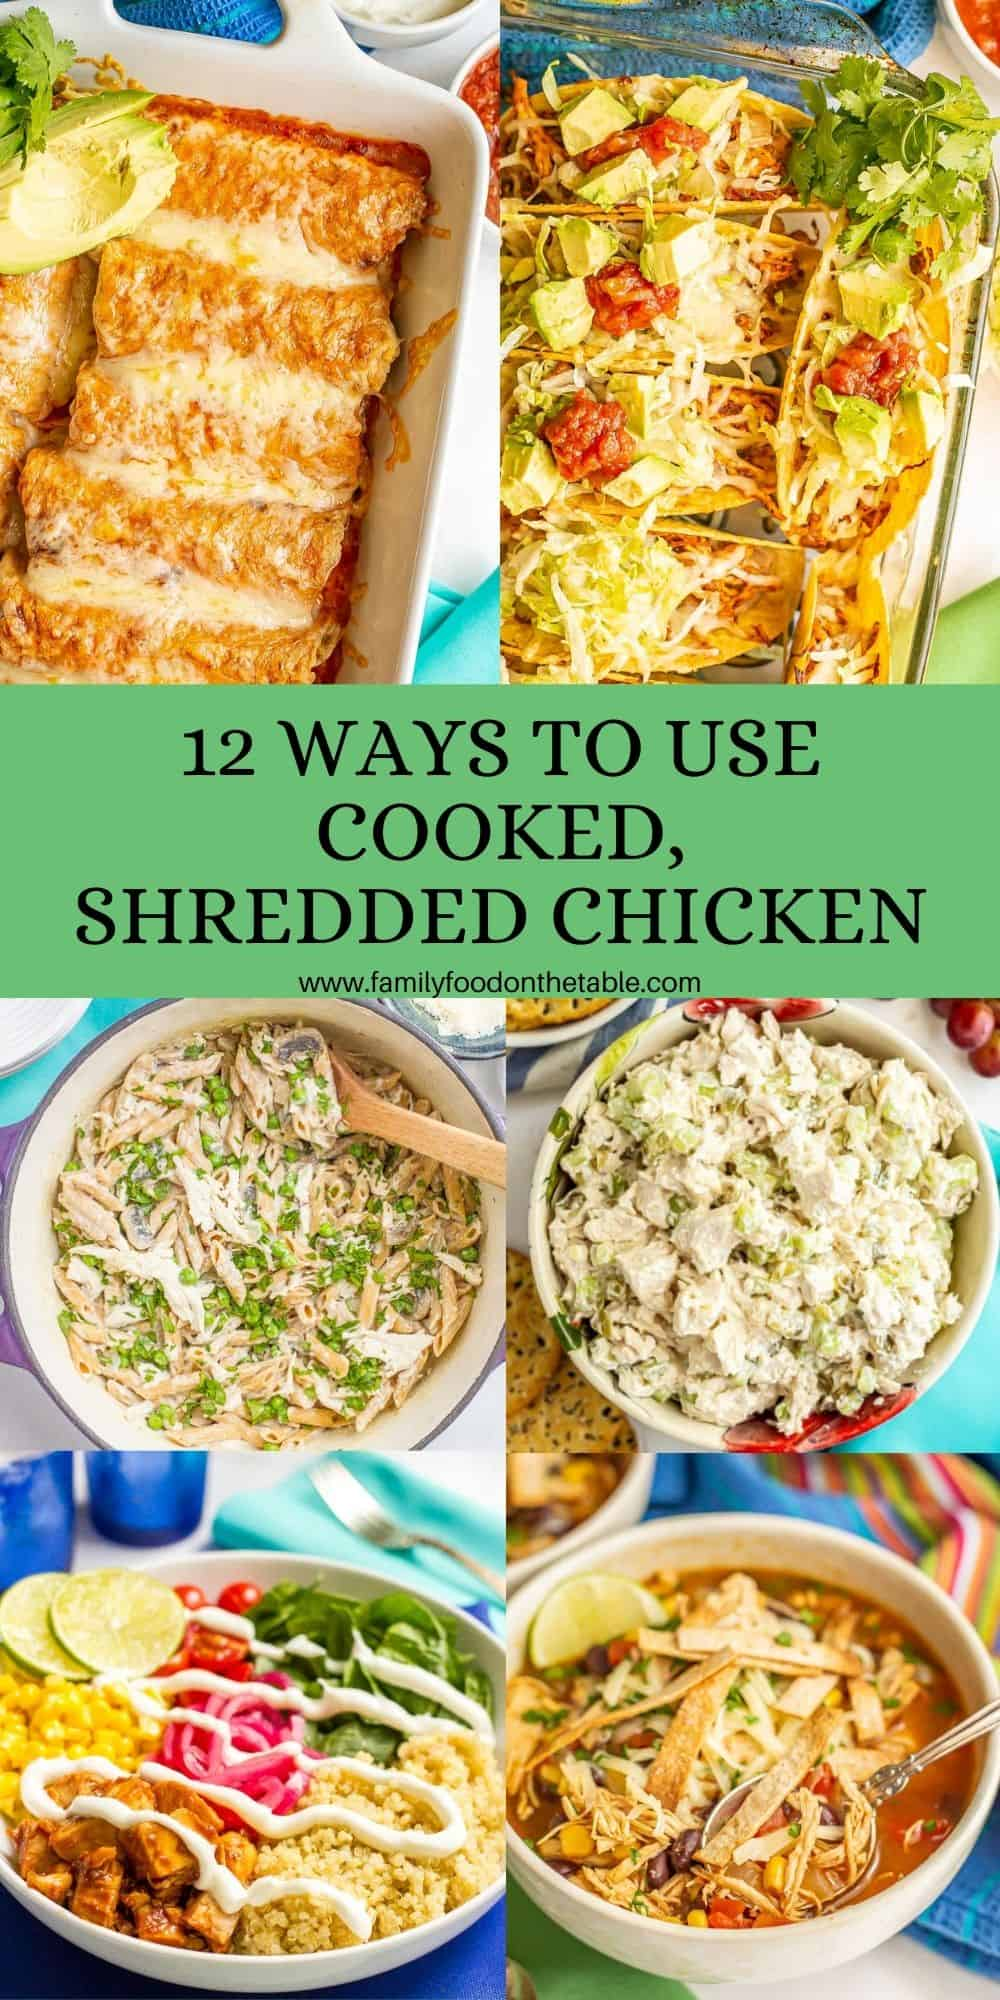 A collage of six photos of recipes made using leftover cooked, shredded chicken with a green text box in the middle